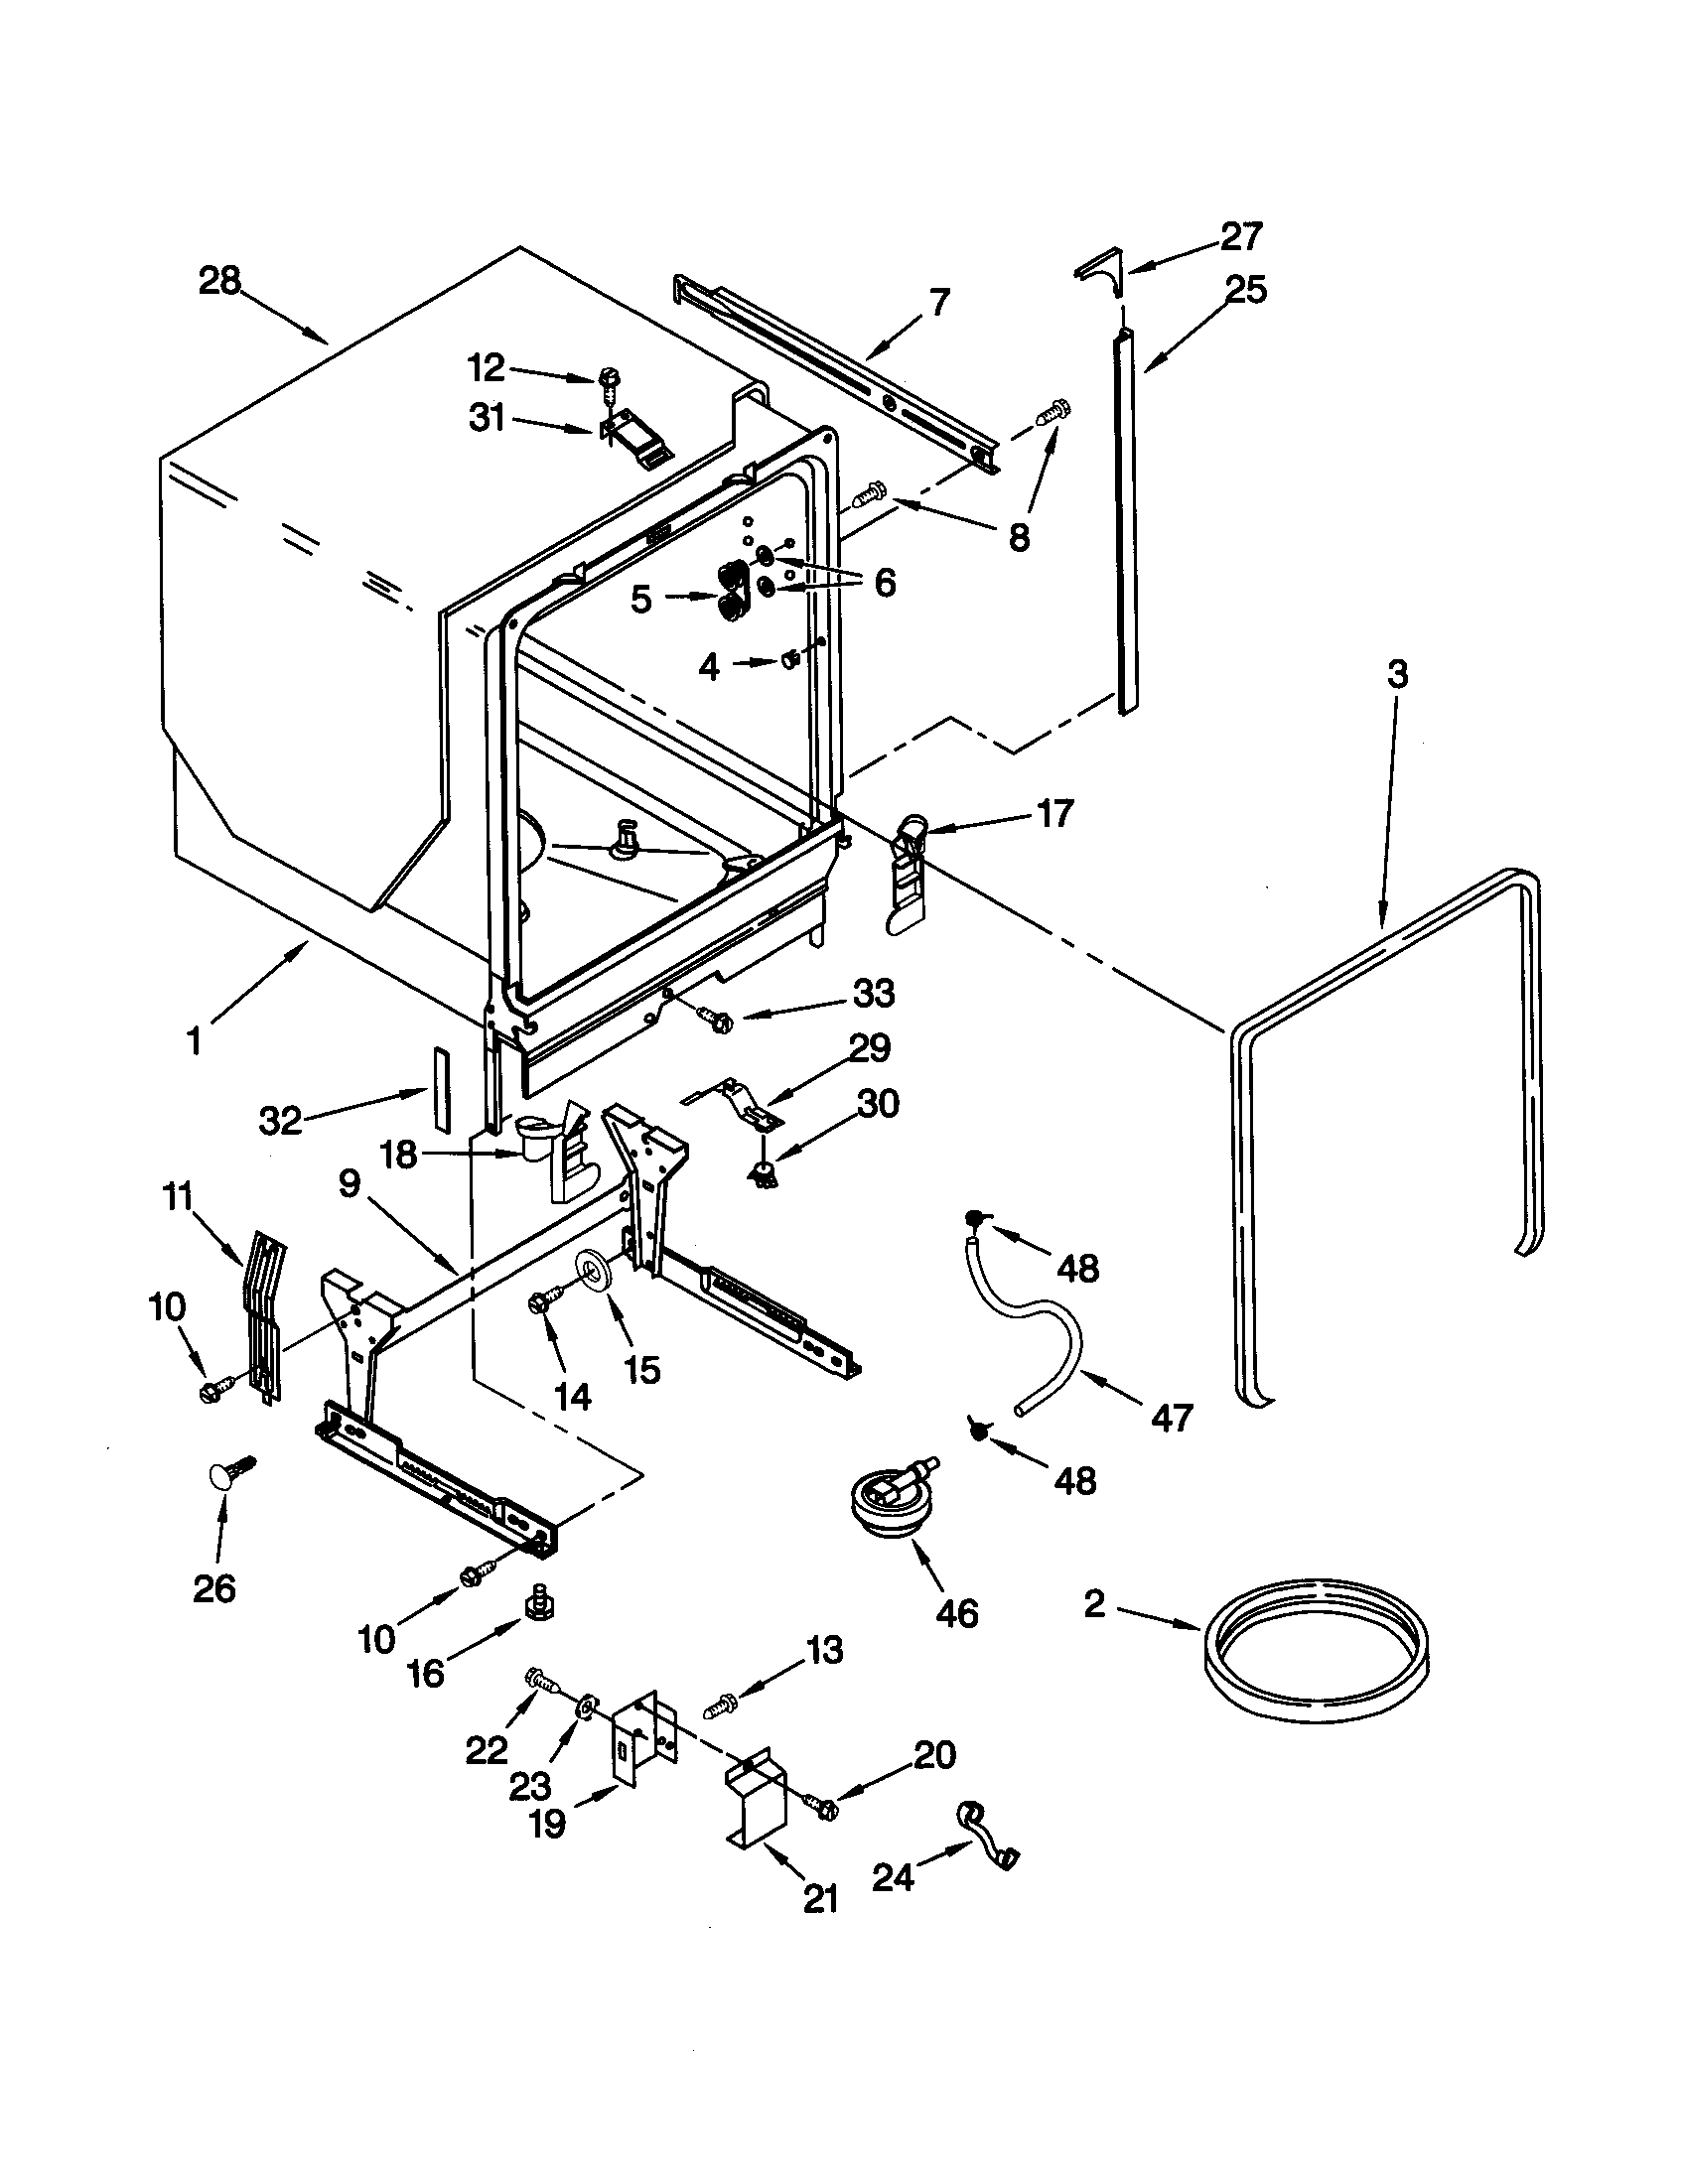 Wiring Diagram For Kitchenaid Dishwasher Wiring Diagram